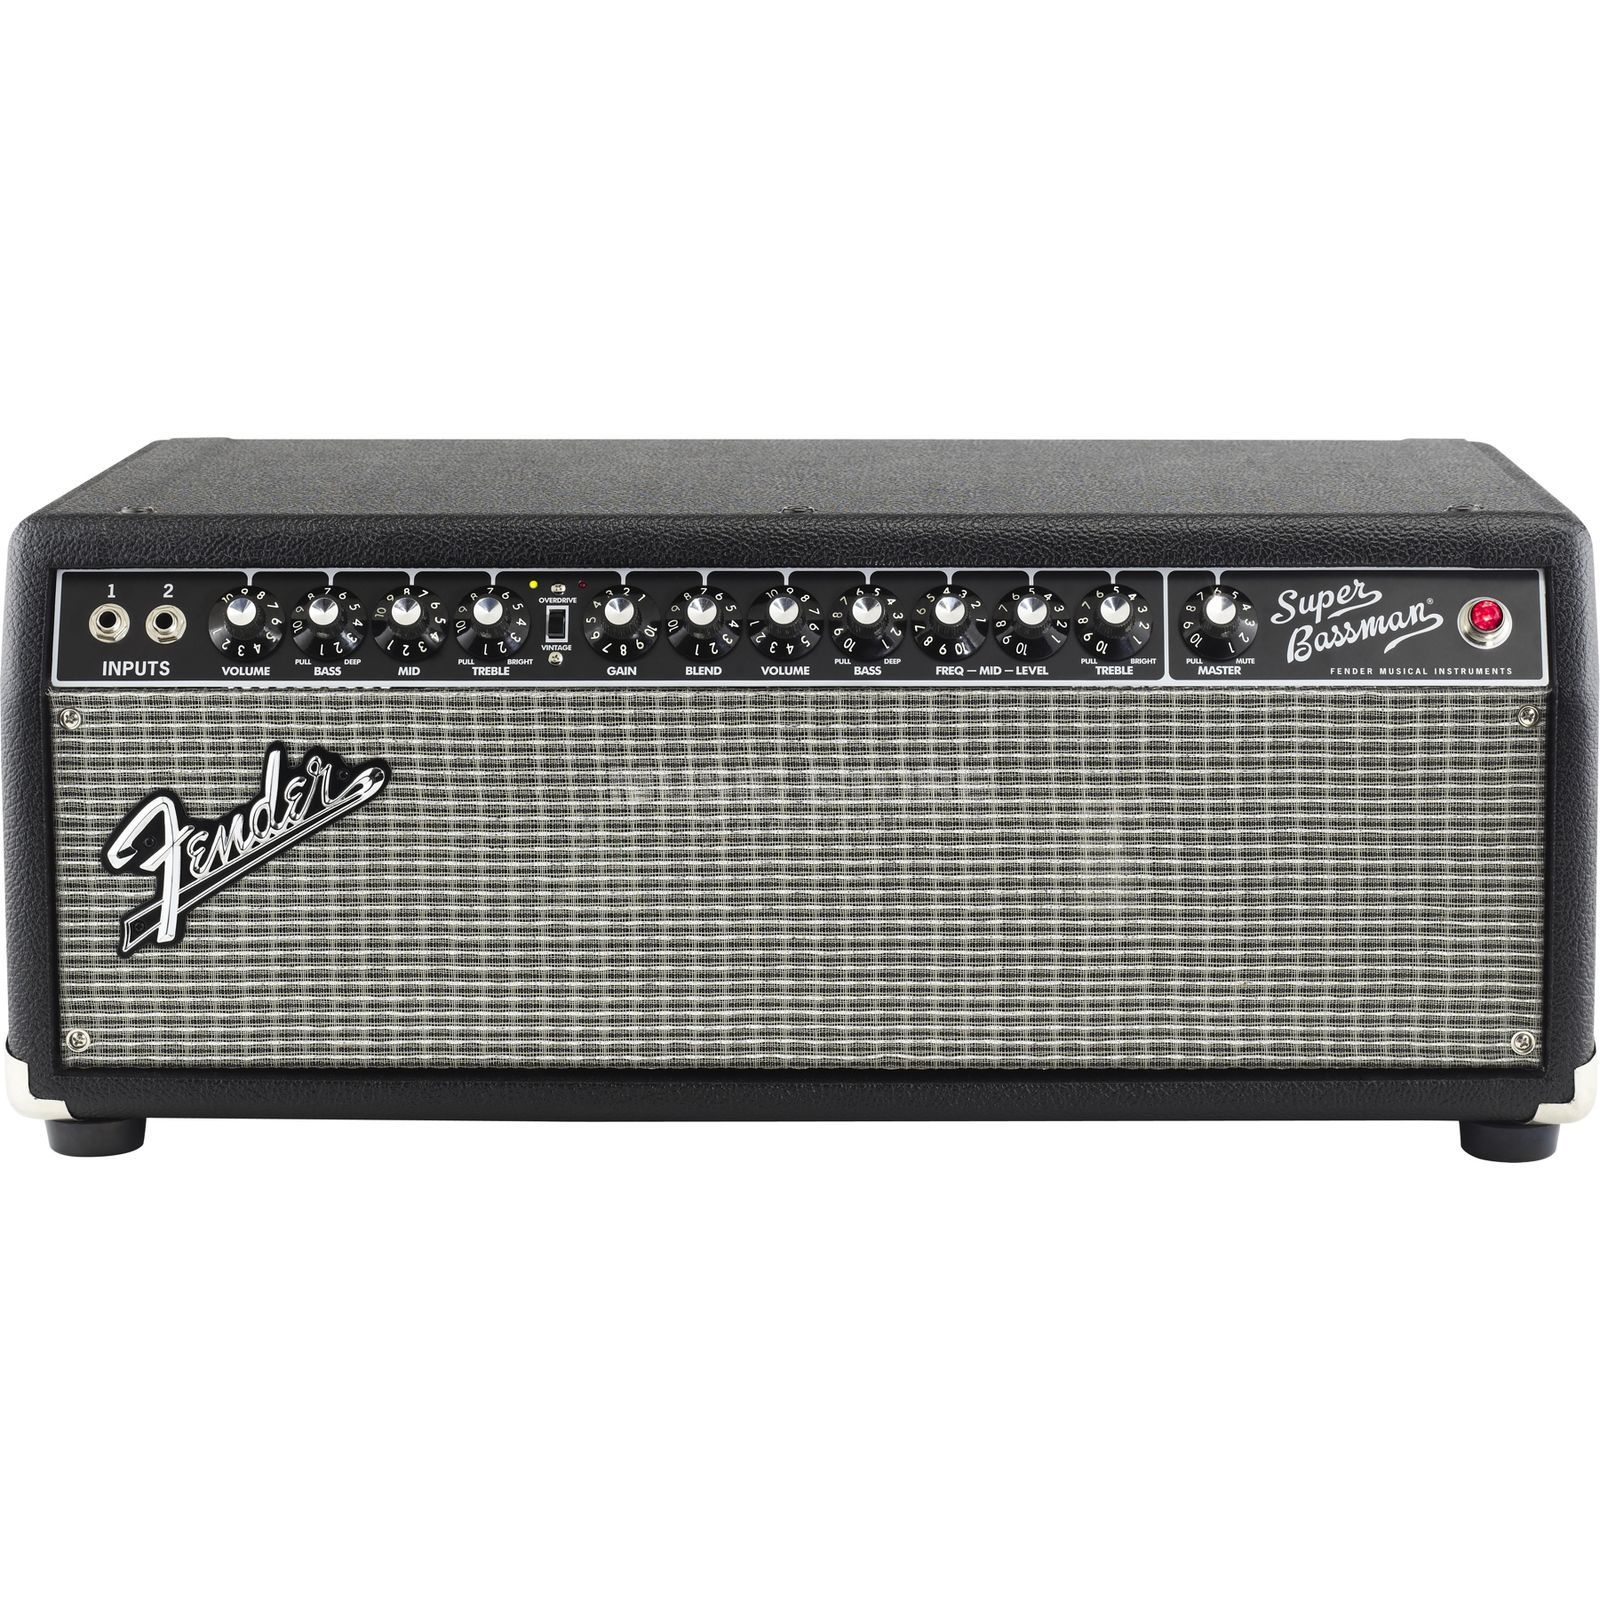 Fender Super-Bassman Bass Guitar Ampl ifier Head   Изображение товара